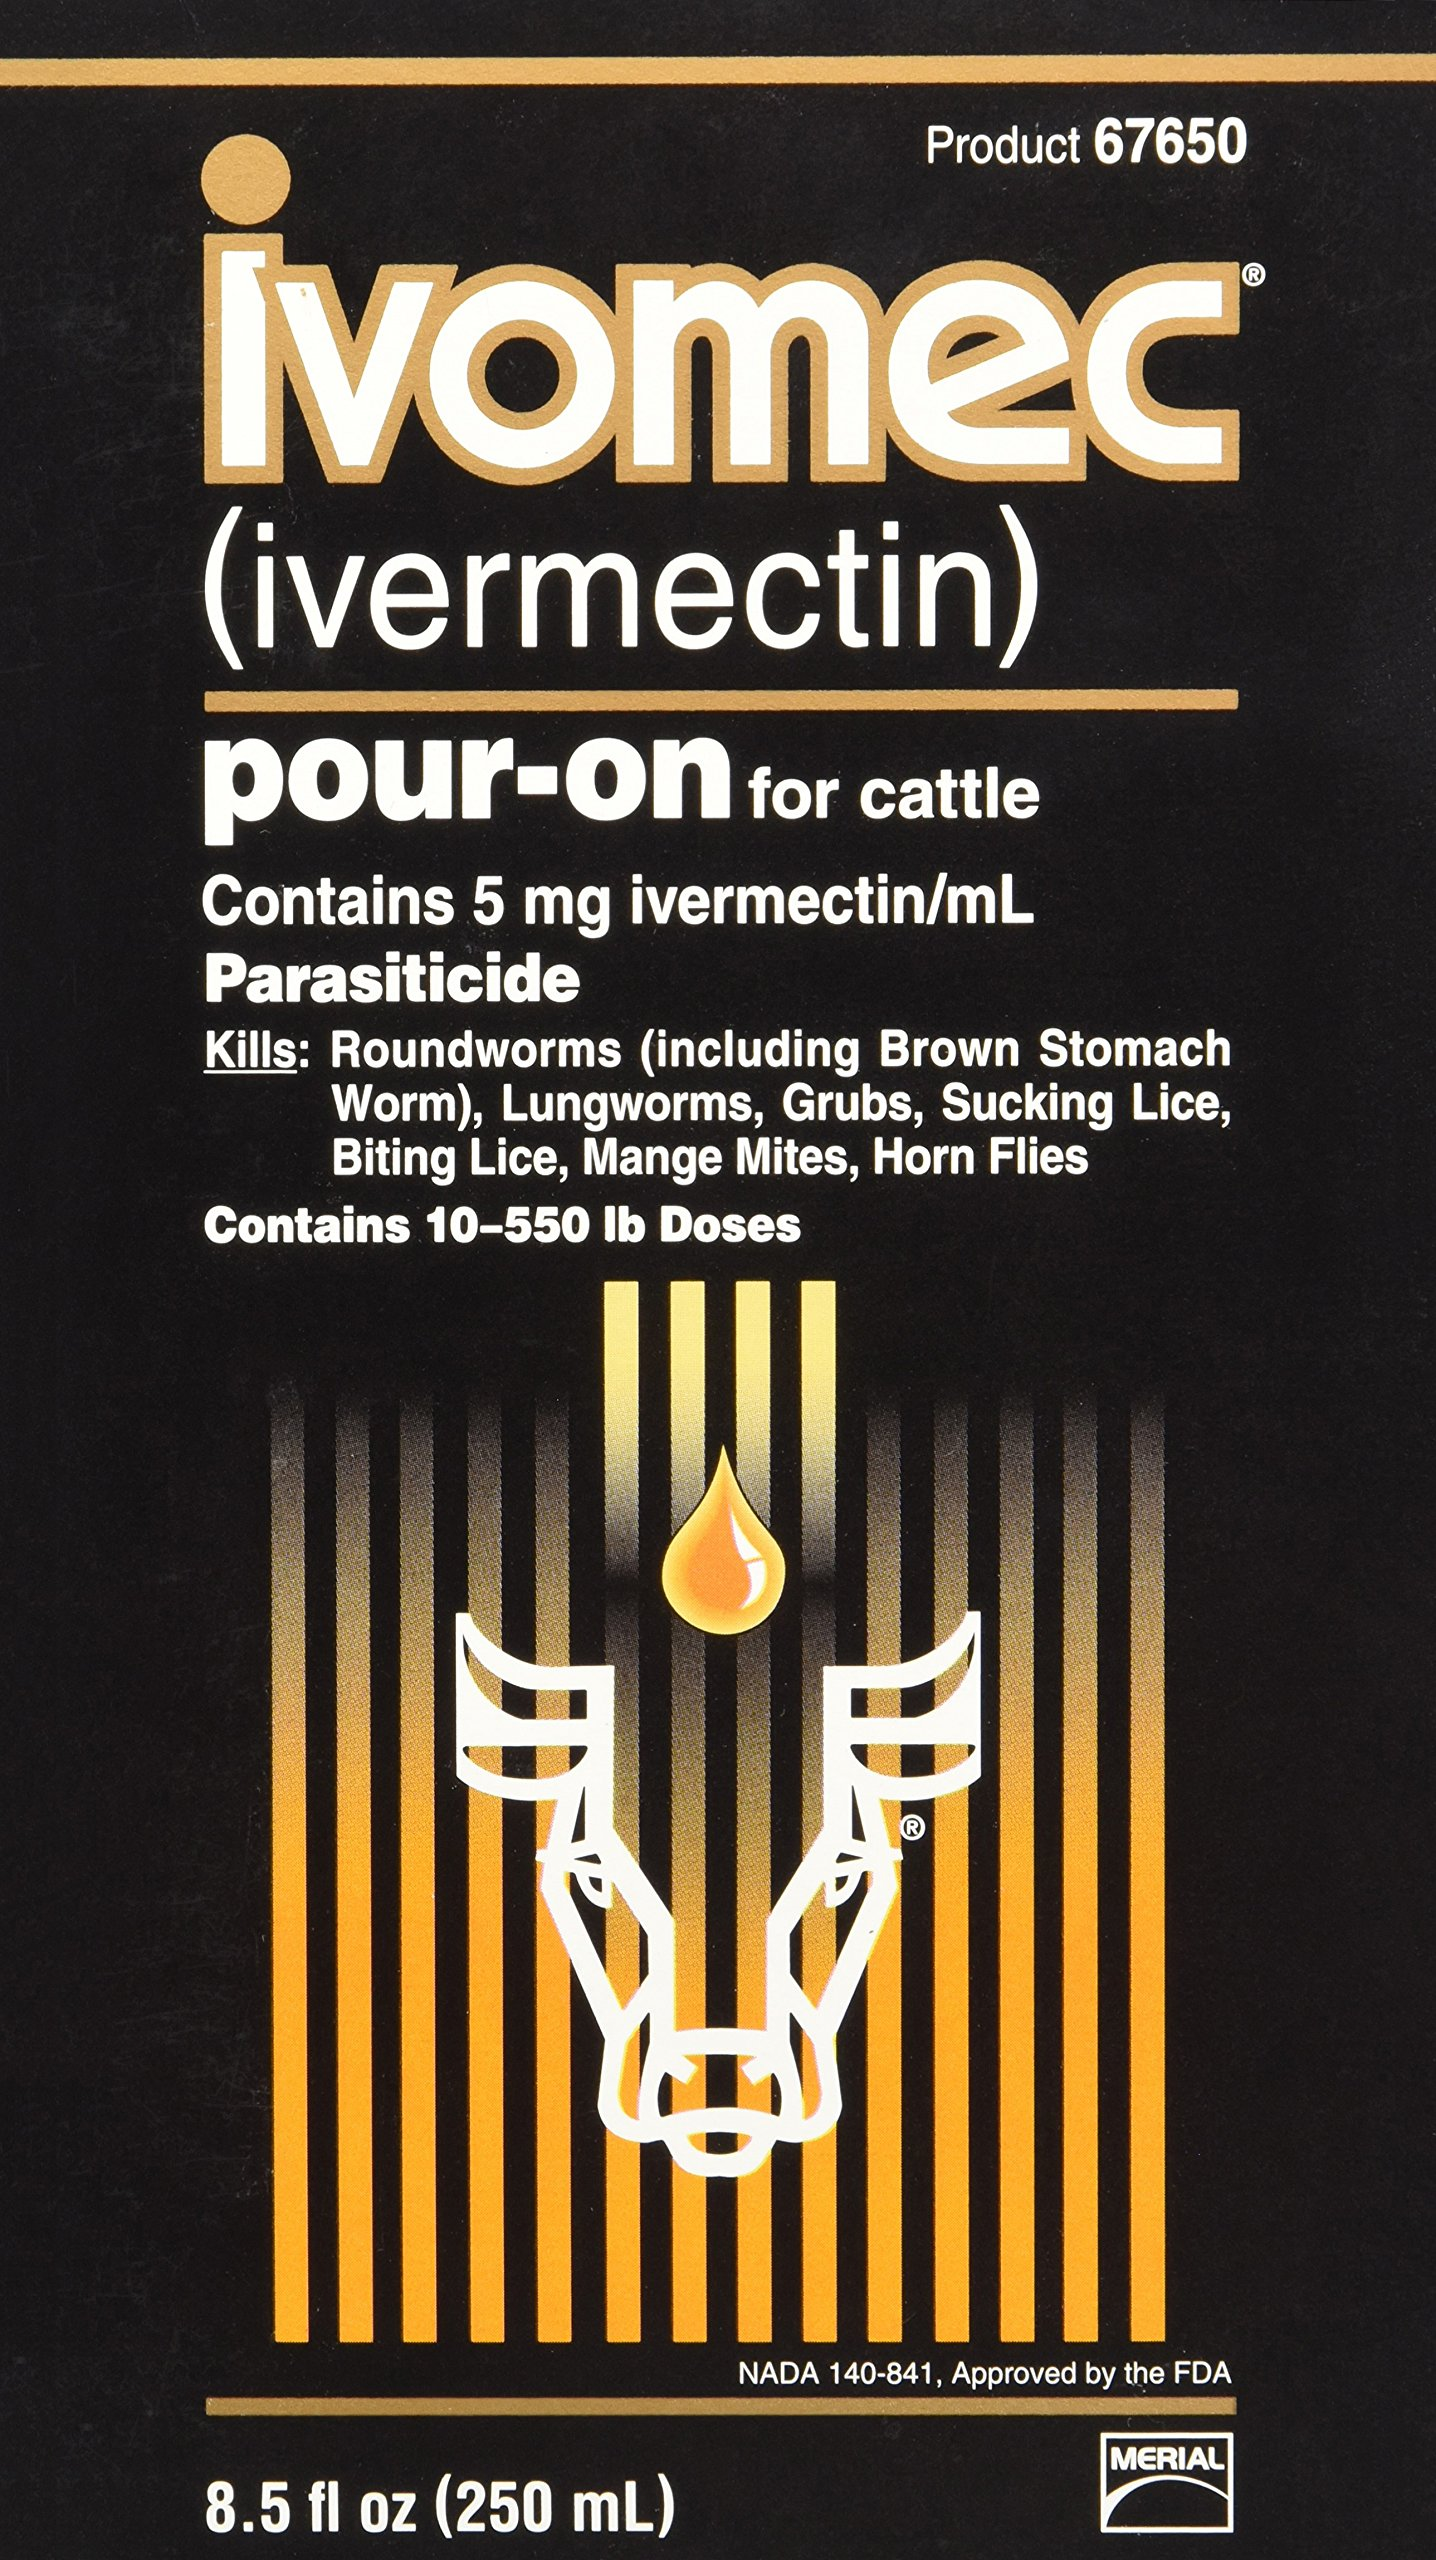 Merial 047894 Ivomec Parasiticide Pour-on for Cattle, 250Ml by Merial